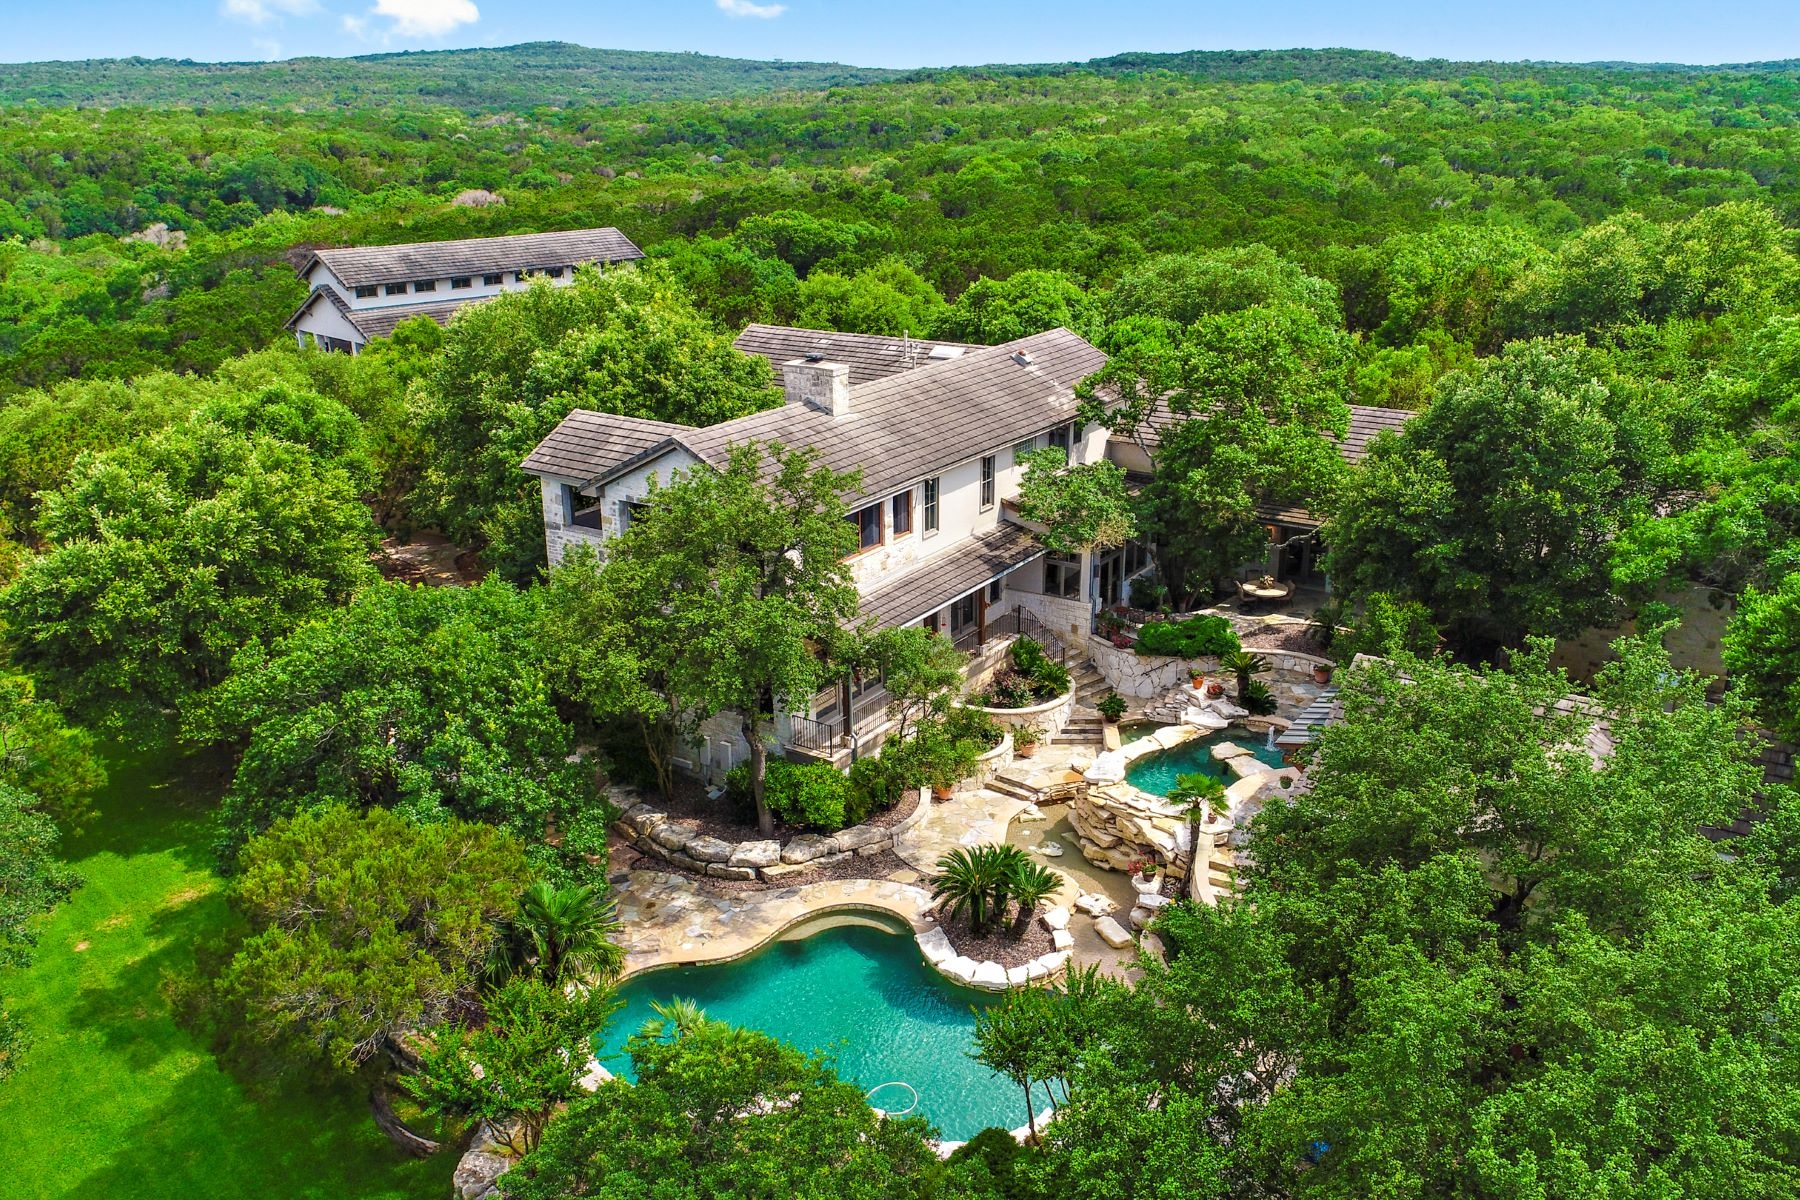 Single Family Homes for Active at 11949 Overlook Pass, Austin, TX 78738 11949 Overlook Pass Austin, Texas 78738 United States